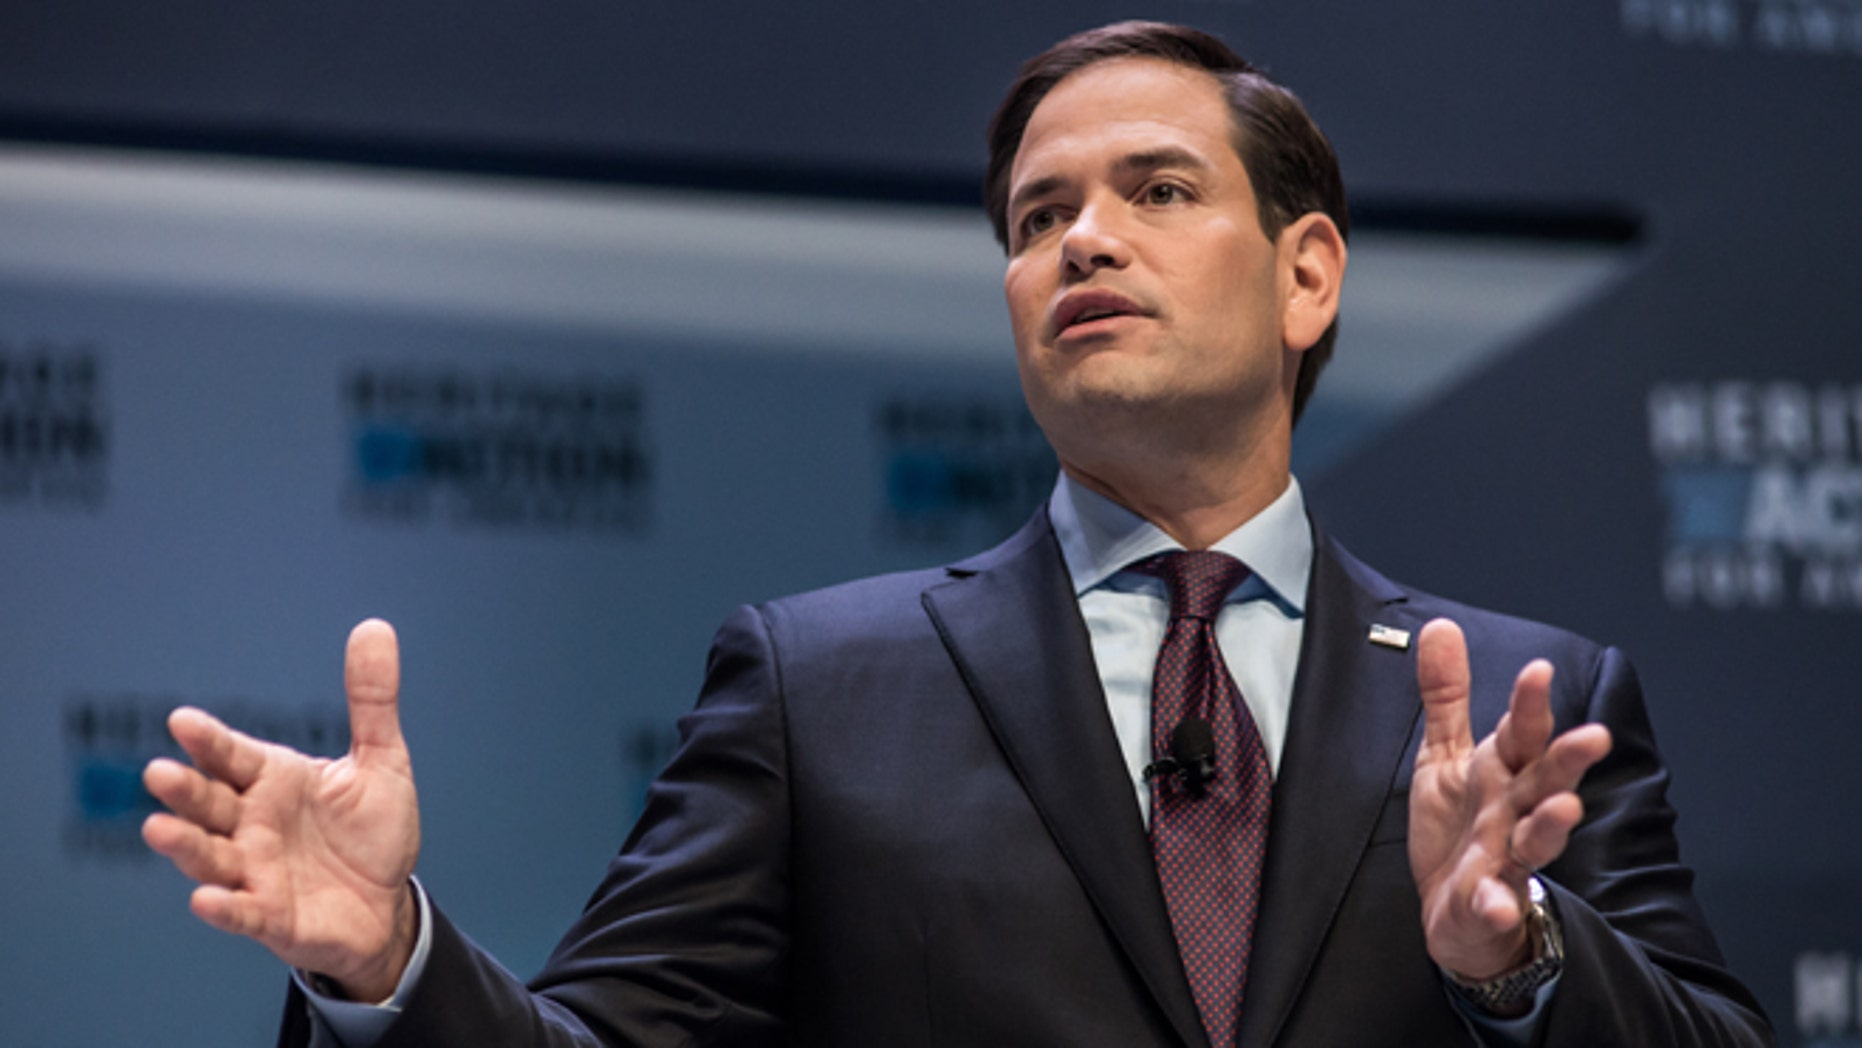 Sen. Marco Rubio speaks to voters at the Heritage Action Presidential Candidate Forum September 18, 2015 in Greenville, South Carolina.  (Photo by Sean Rayford/Getty Images)